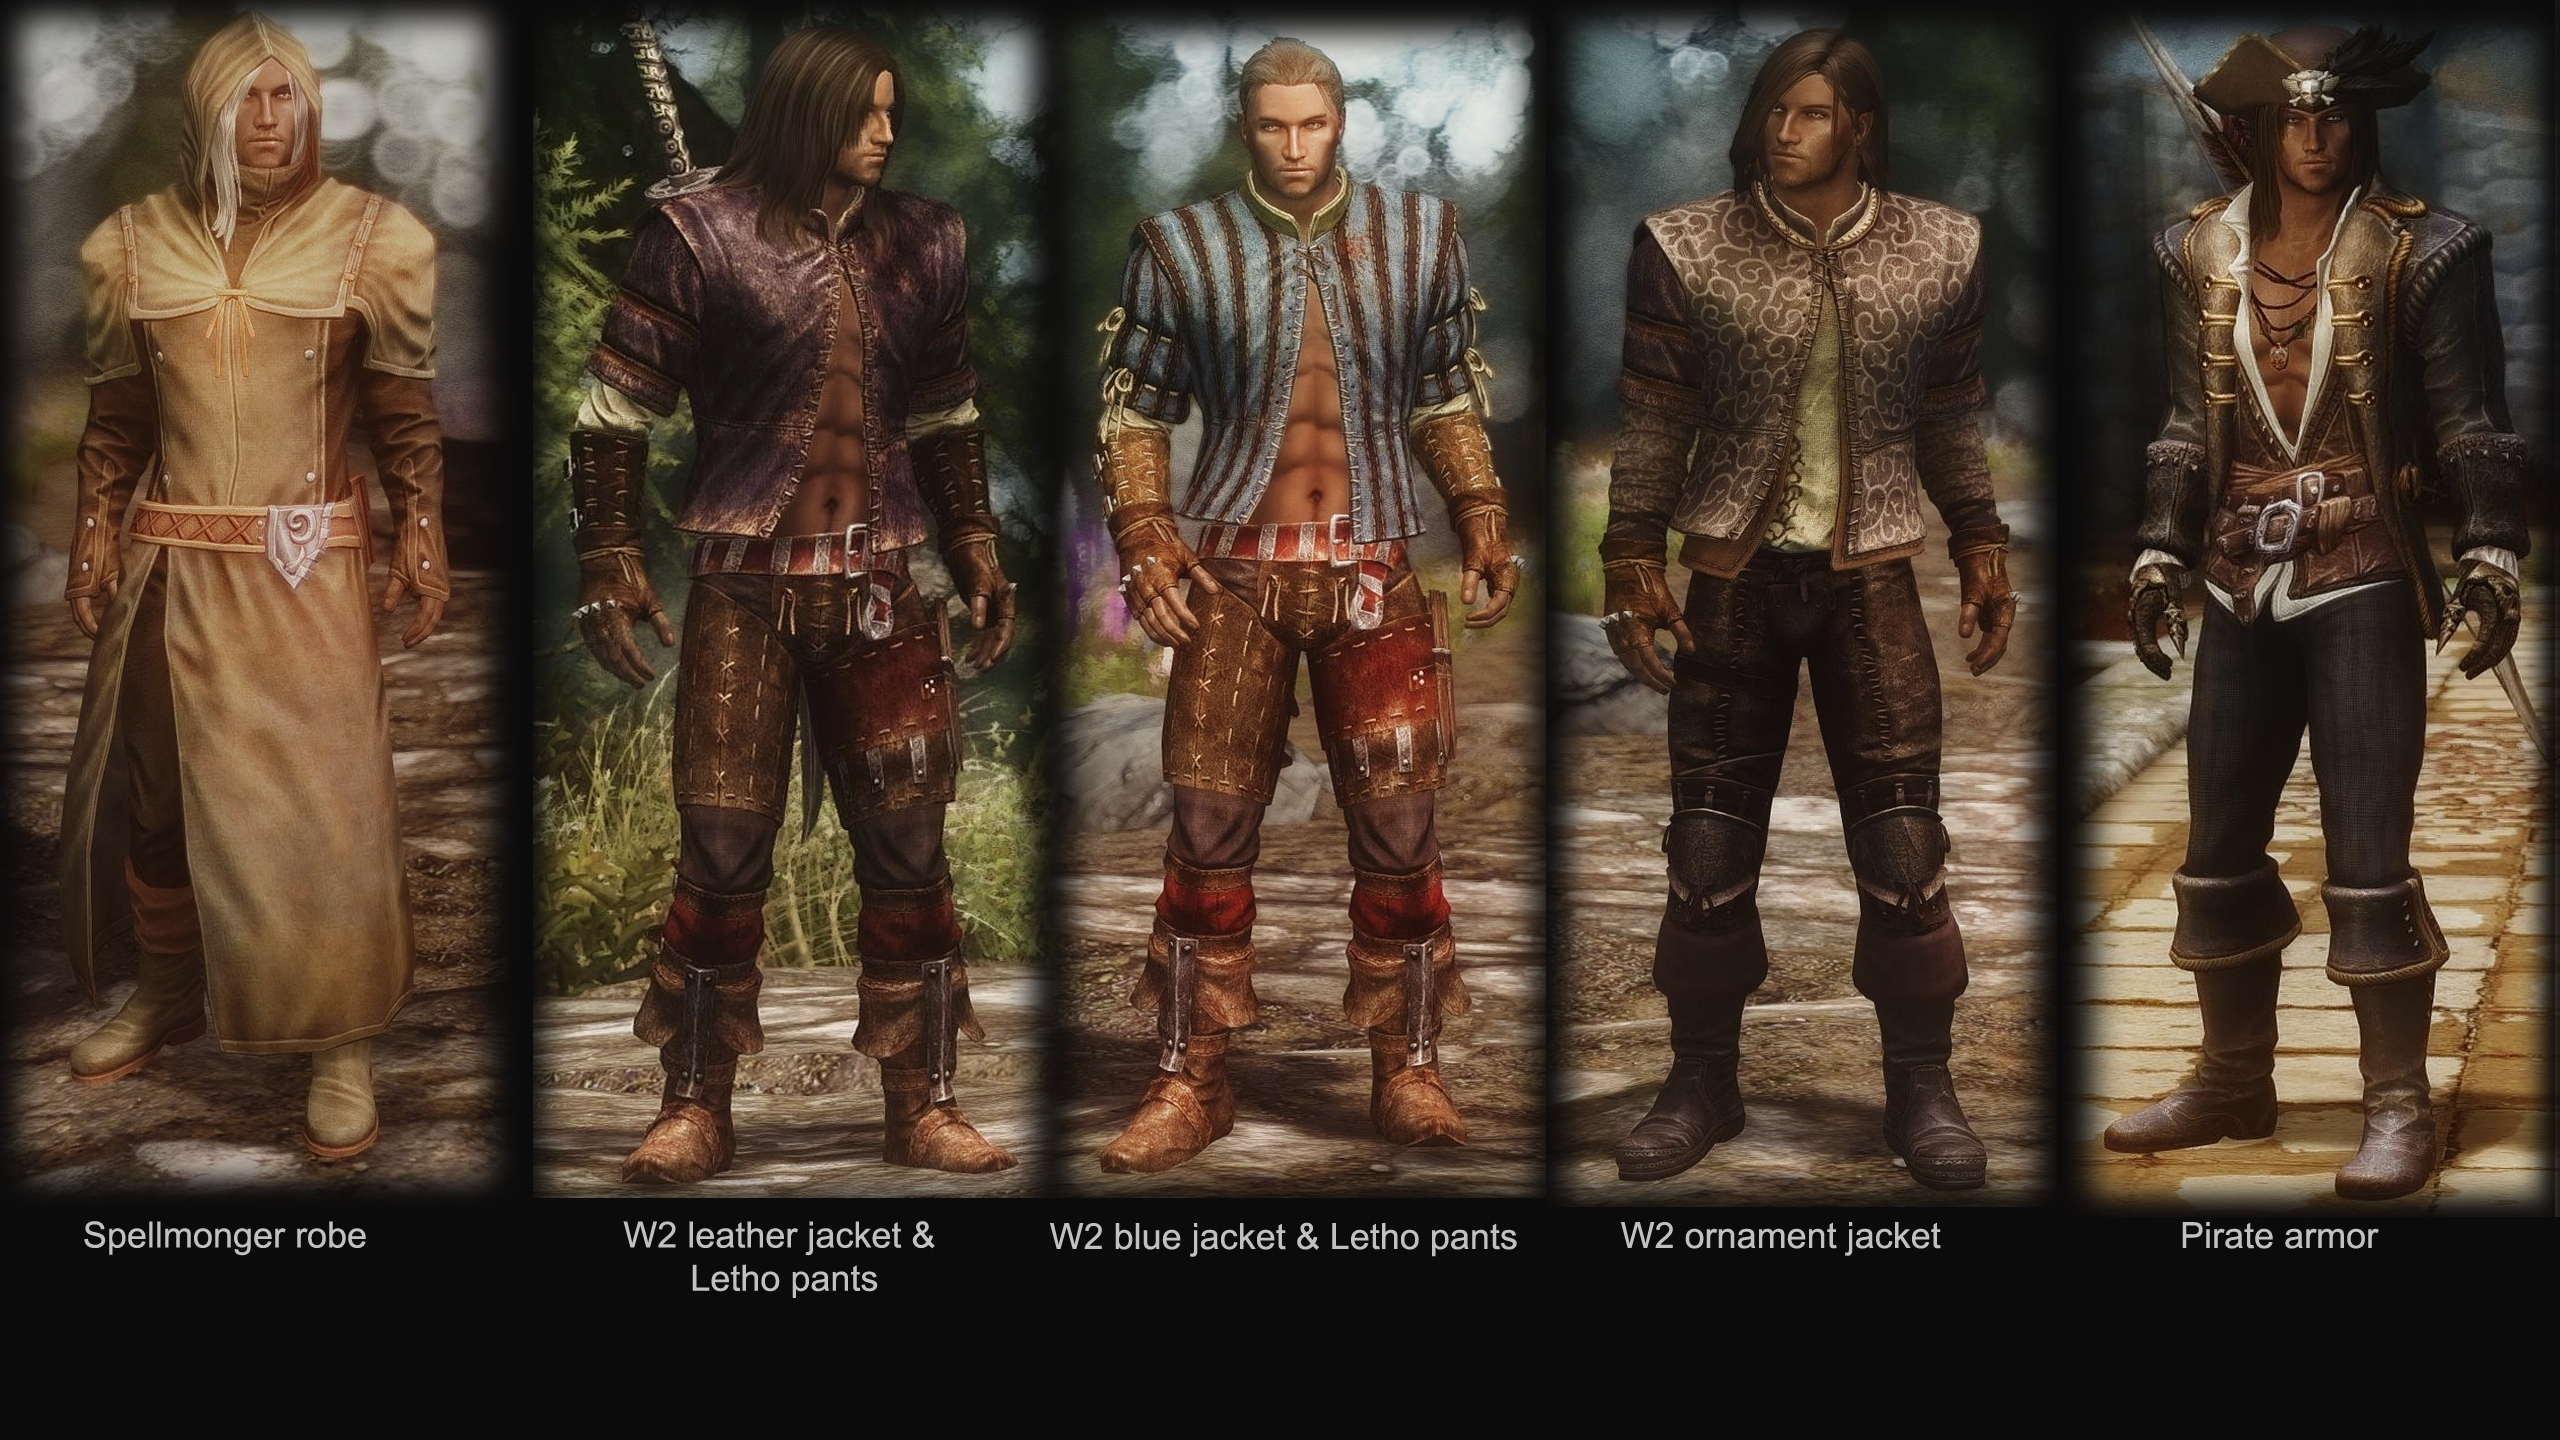 Any Cool Mage Clothing Mods For Male Mages Skyrimmods